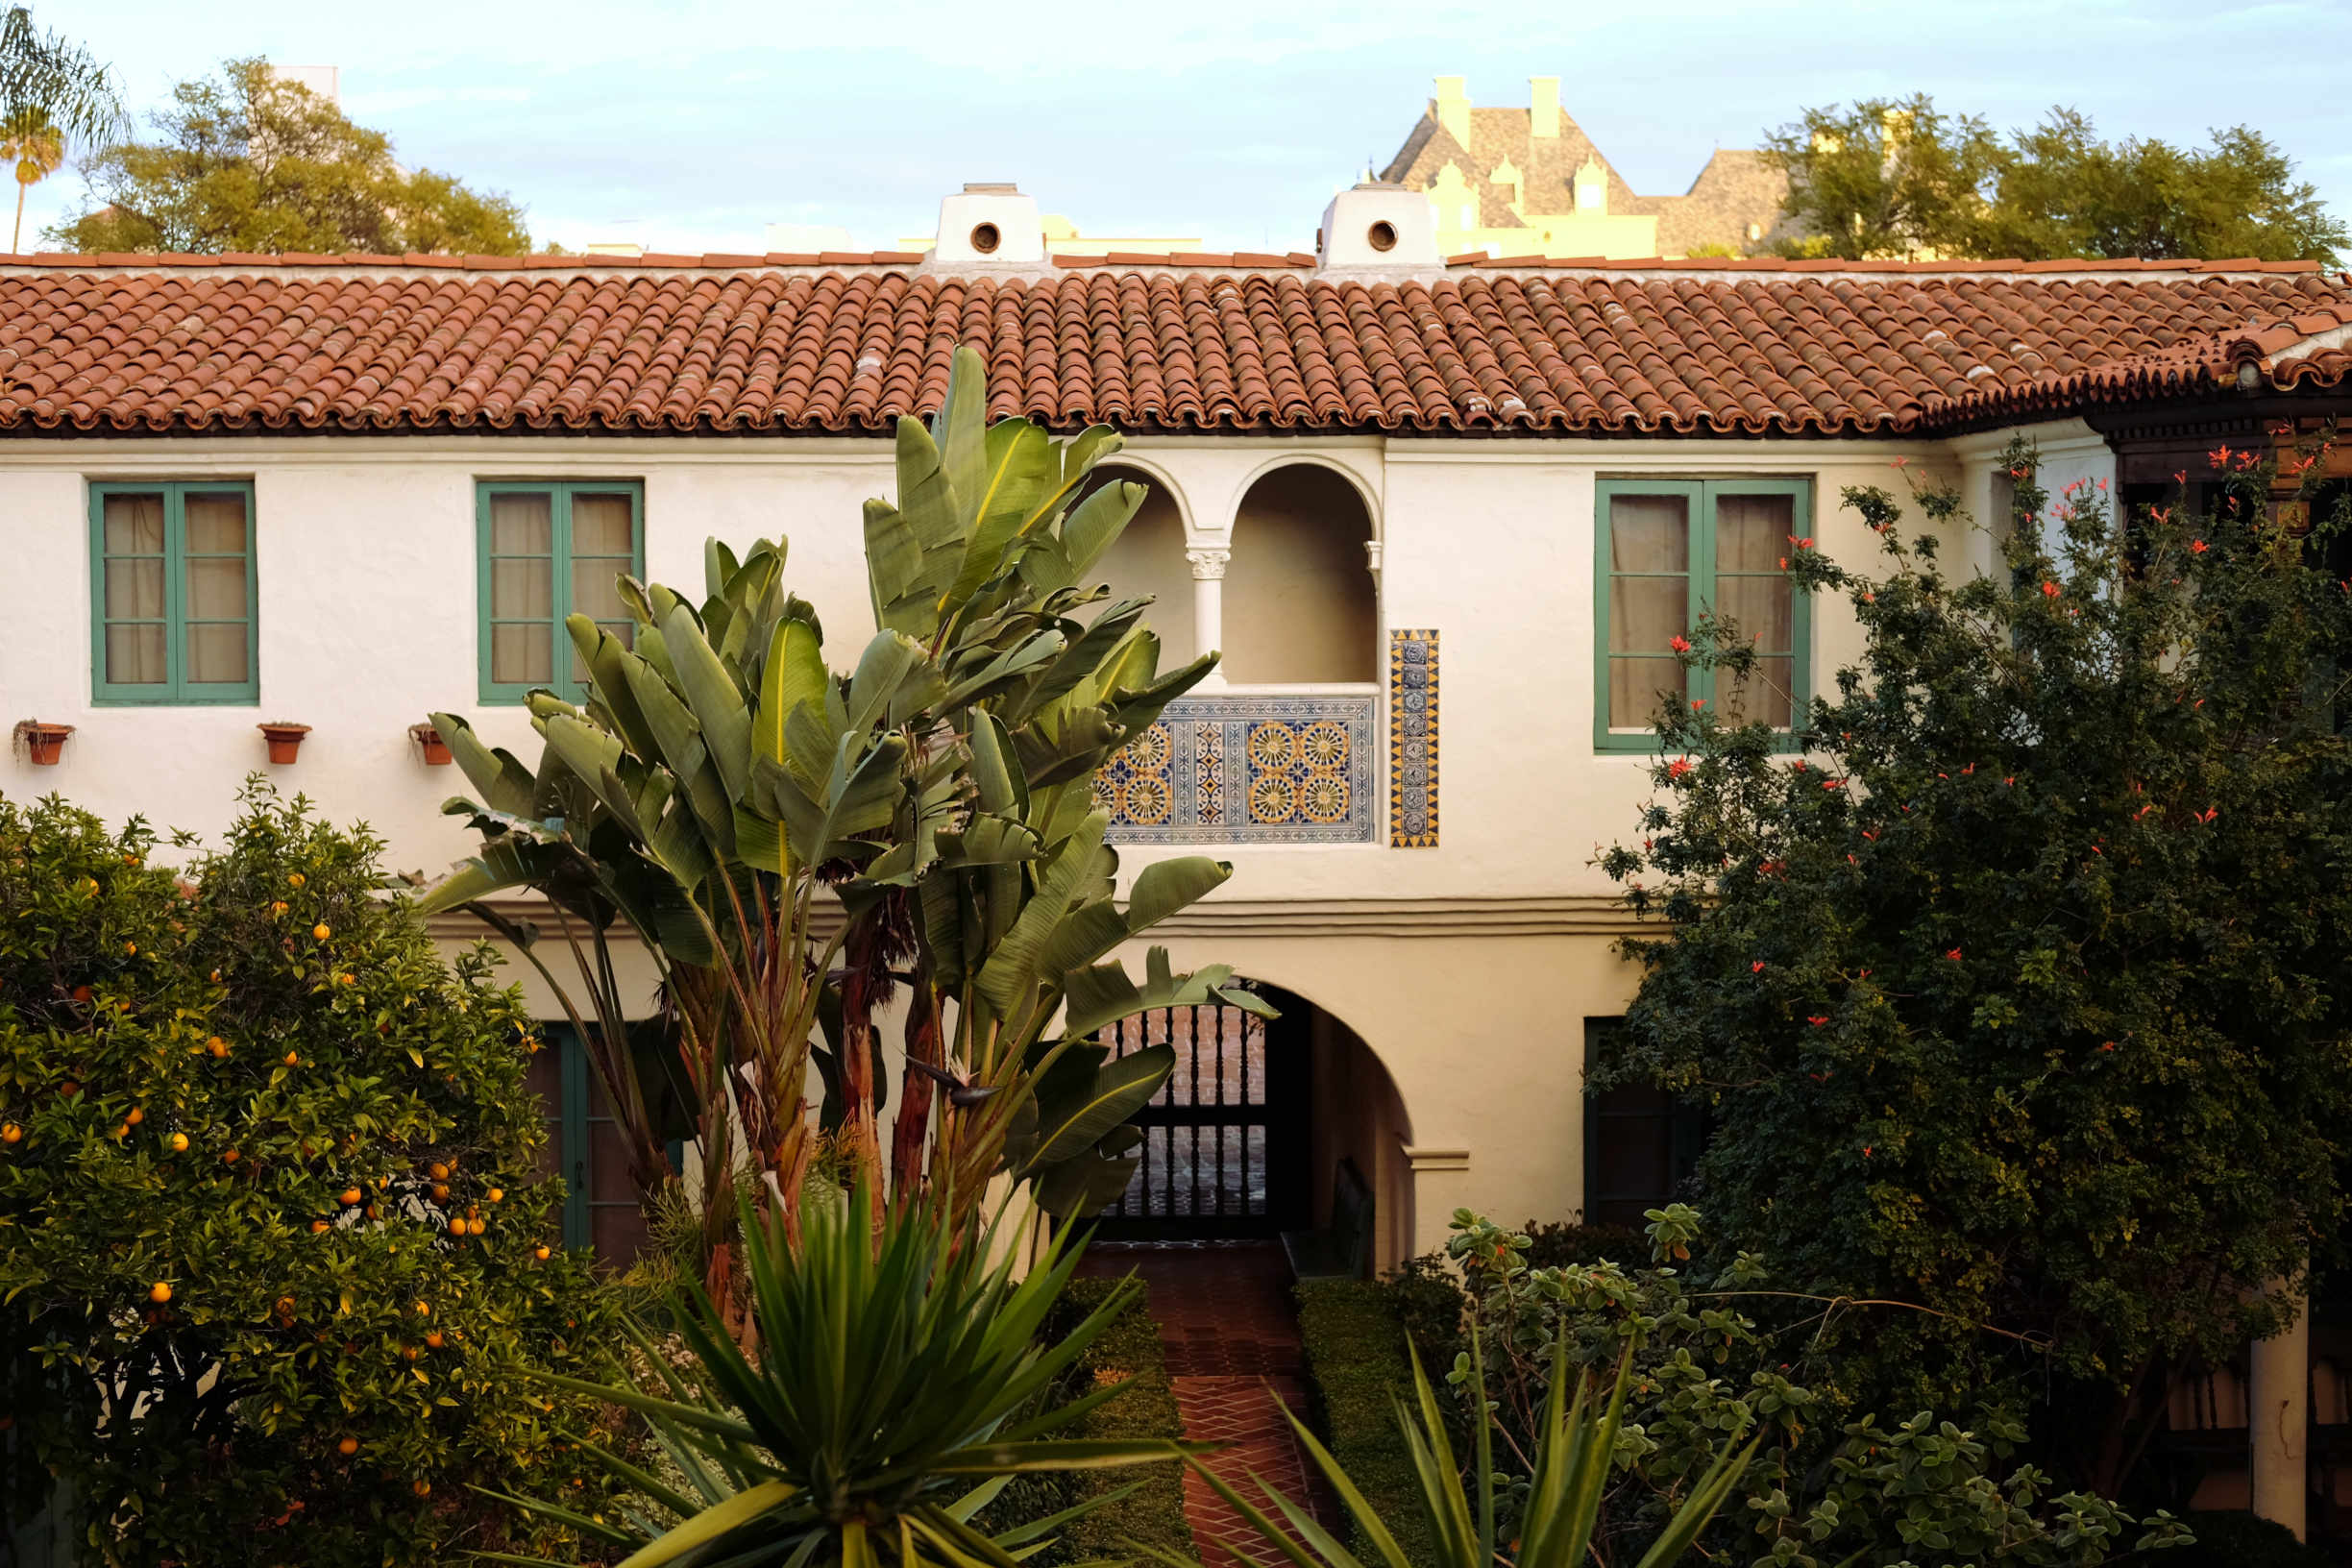 Hollywood Spanish Colonial or Mediterranean style courtyard with Chateau Marmont in background